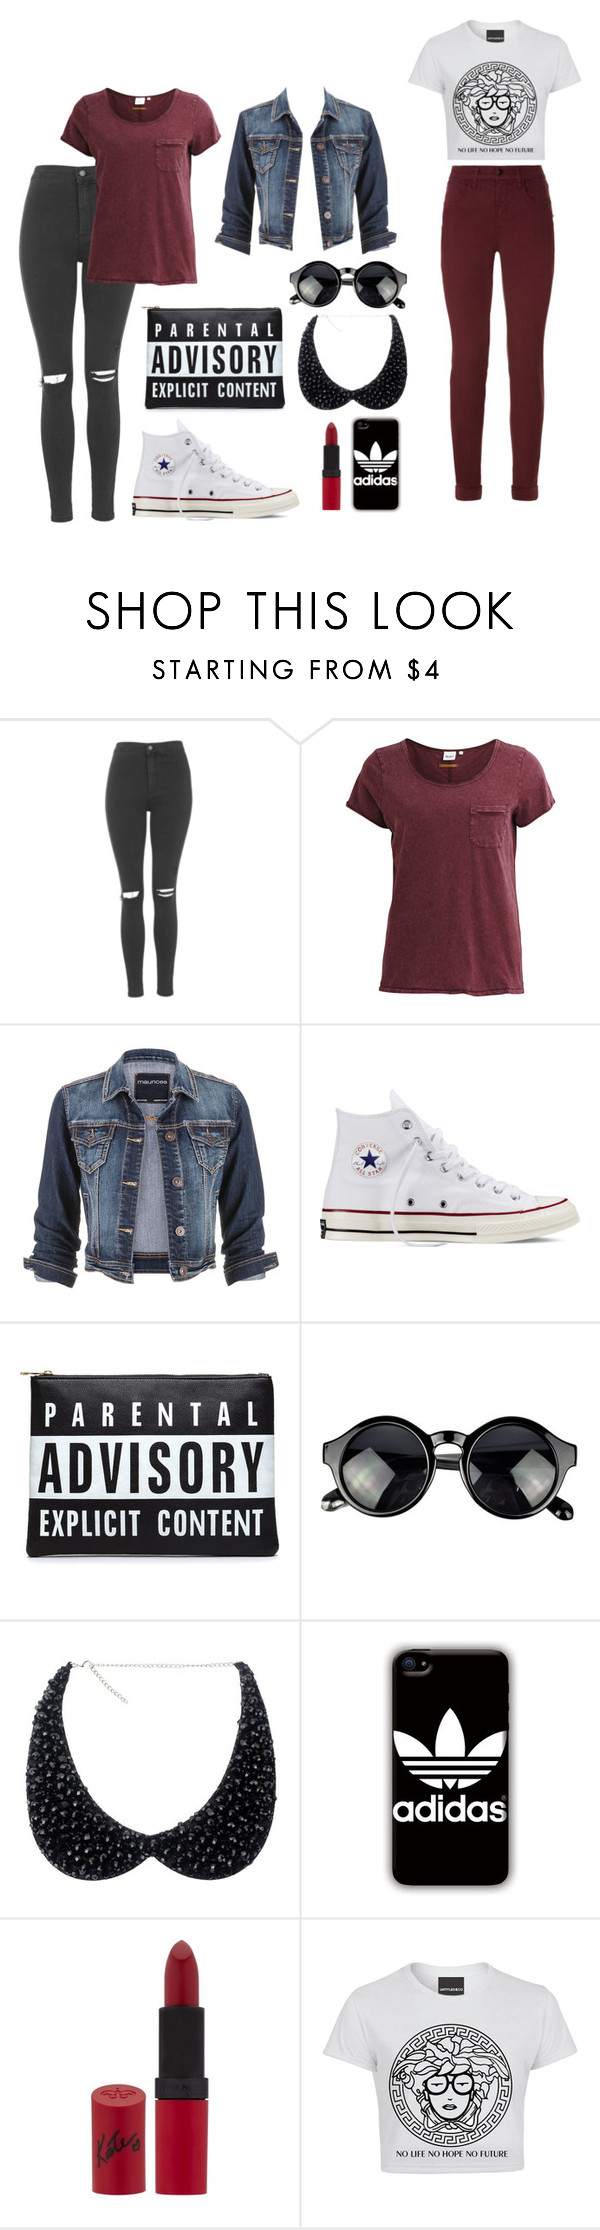 """Untitled #73"" by shelby-lee-hewlett ❤ liked on Polyvore featuring Topshop, Object Collectors Item, maurices, Converse, CO, adidas, Rimmel, J Brand, women's clothing and women's fashion"